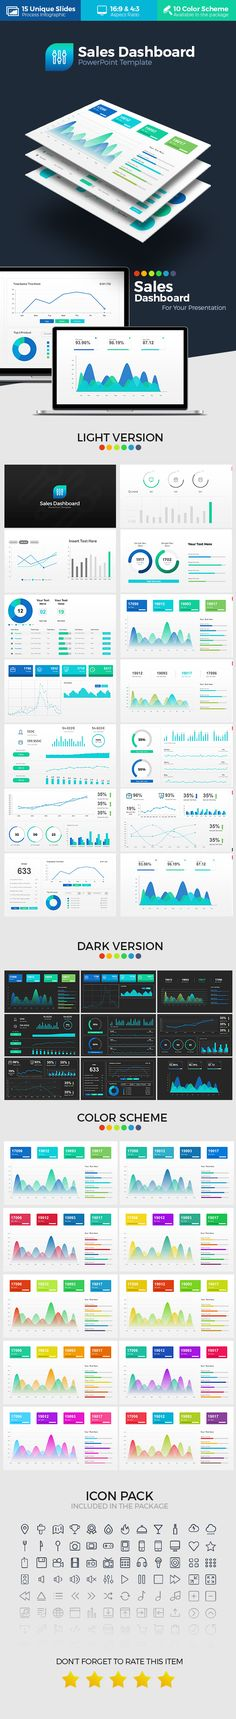 Sales Dashboard PowerPoint Template - Business #PowerPoint #Templates Download here:      https://graphicriver.net/item/sales-dashboard-powerpoint-template/17728338?ref=suz_562geid